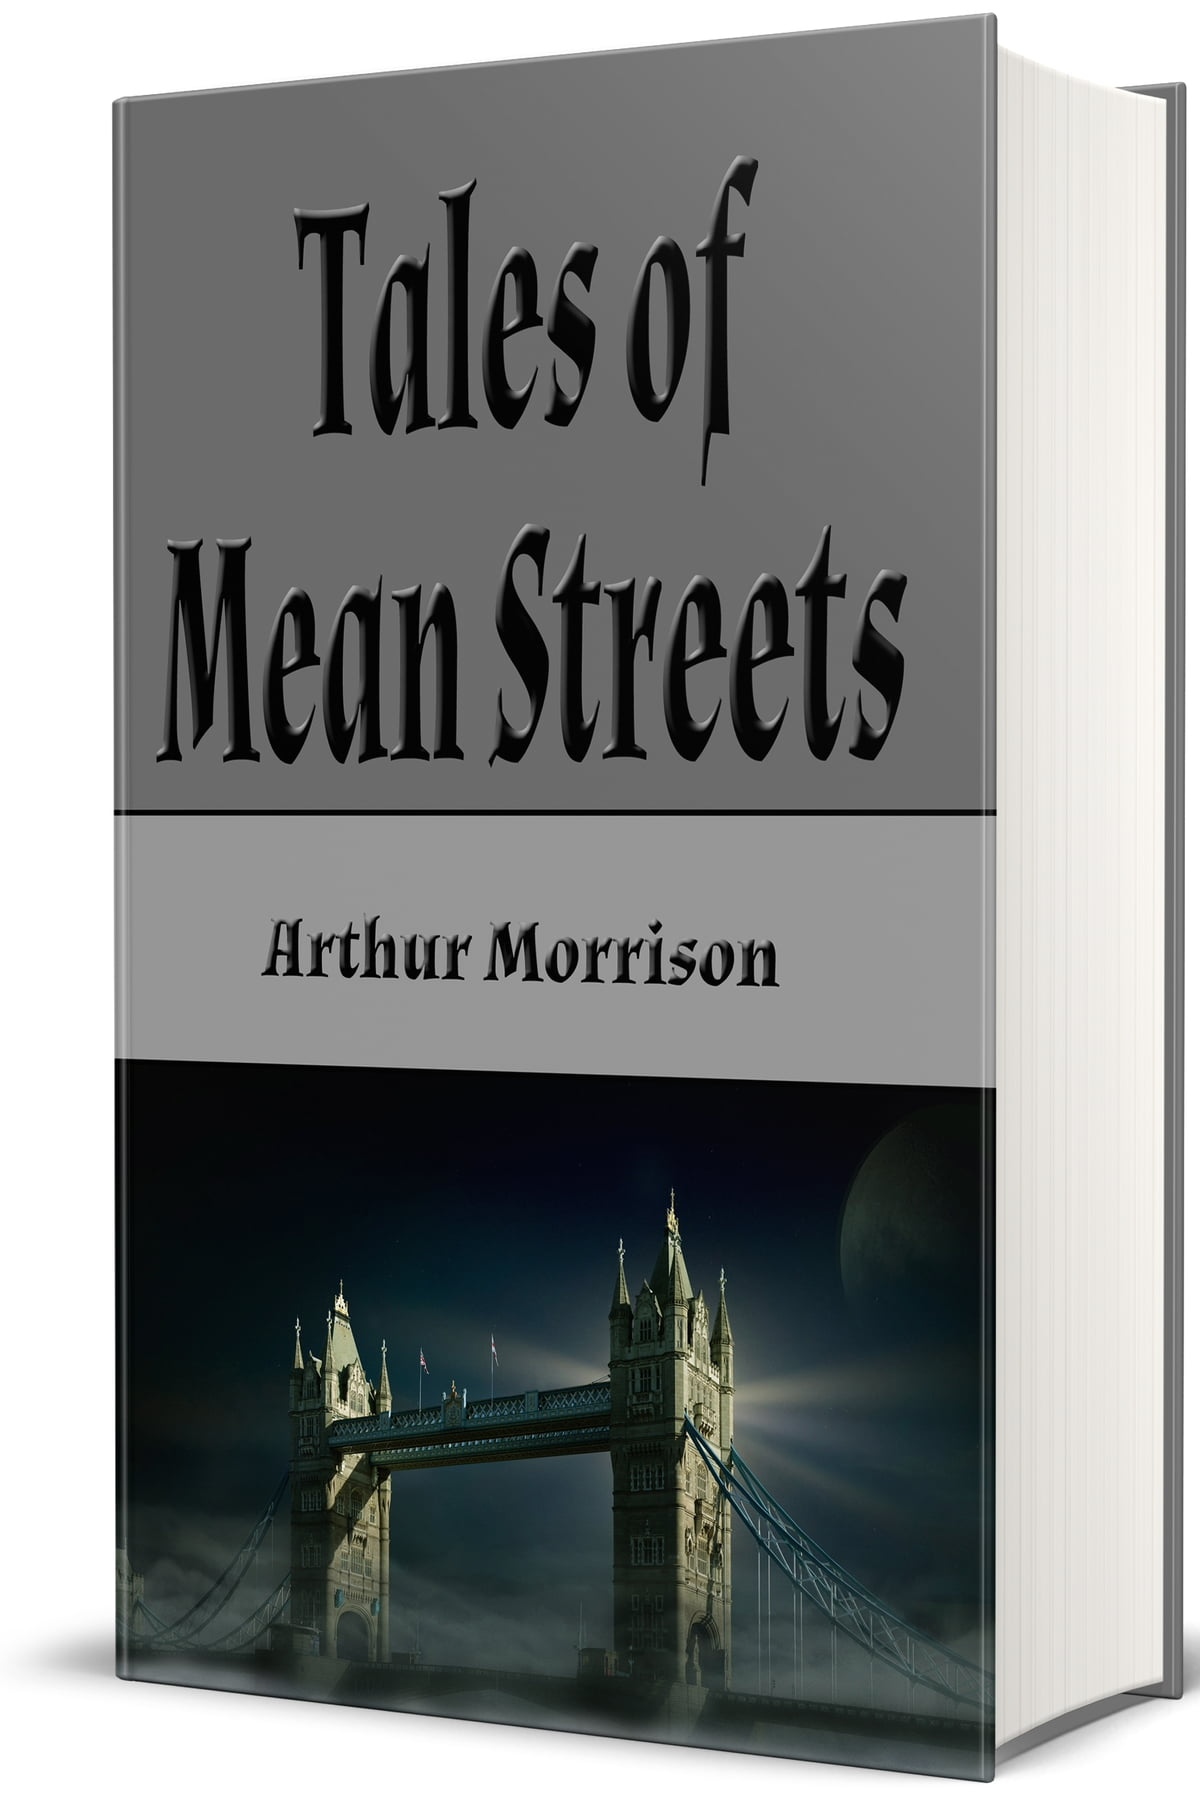 Tales of Mean Streets (Illustrated